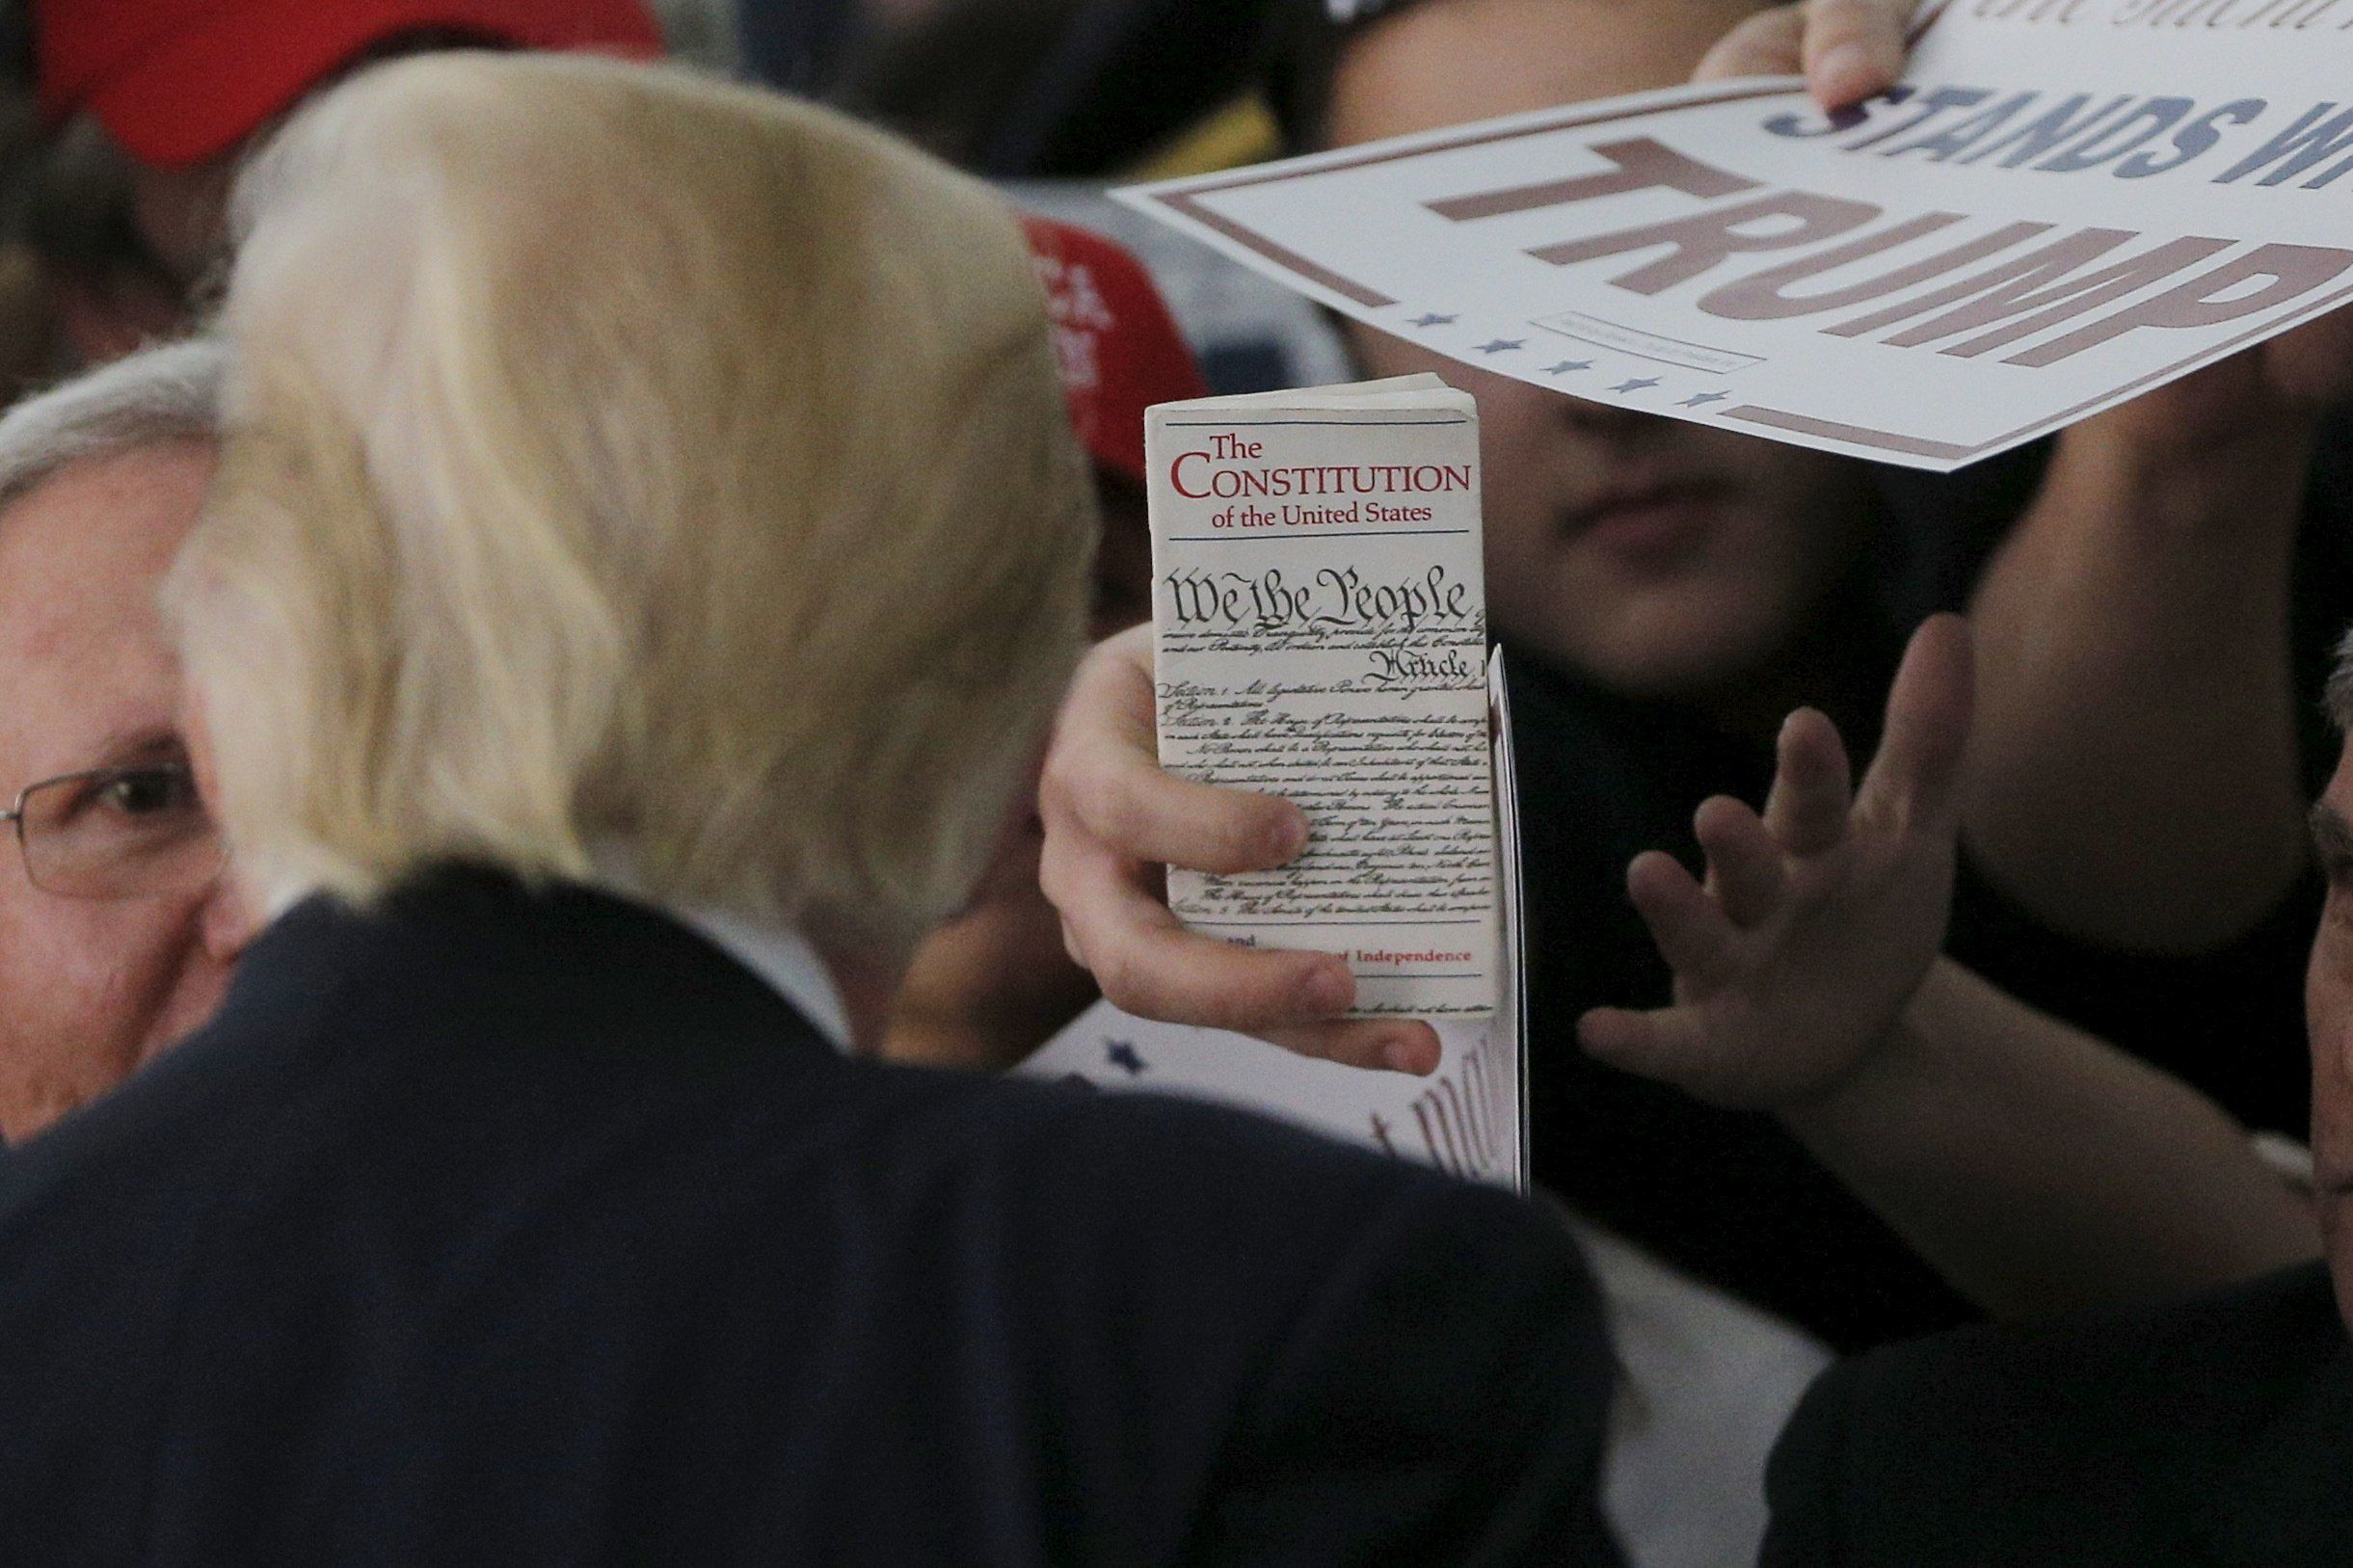 An audience member holds up a copy of the U.S. Constitution for U.S. Republican presidential candidate Donald Trump at a campaign rally in Warwick, Rhode Island April 25, 2016.  REUTERS/Brian Snyder